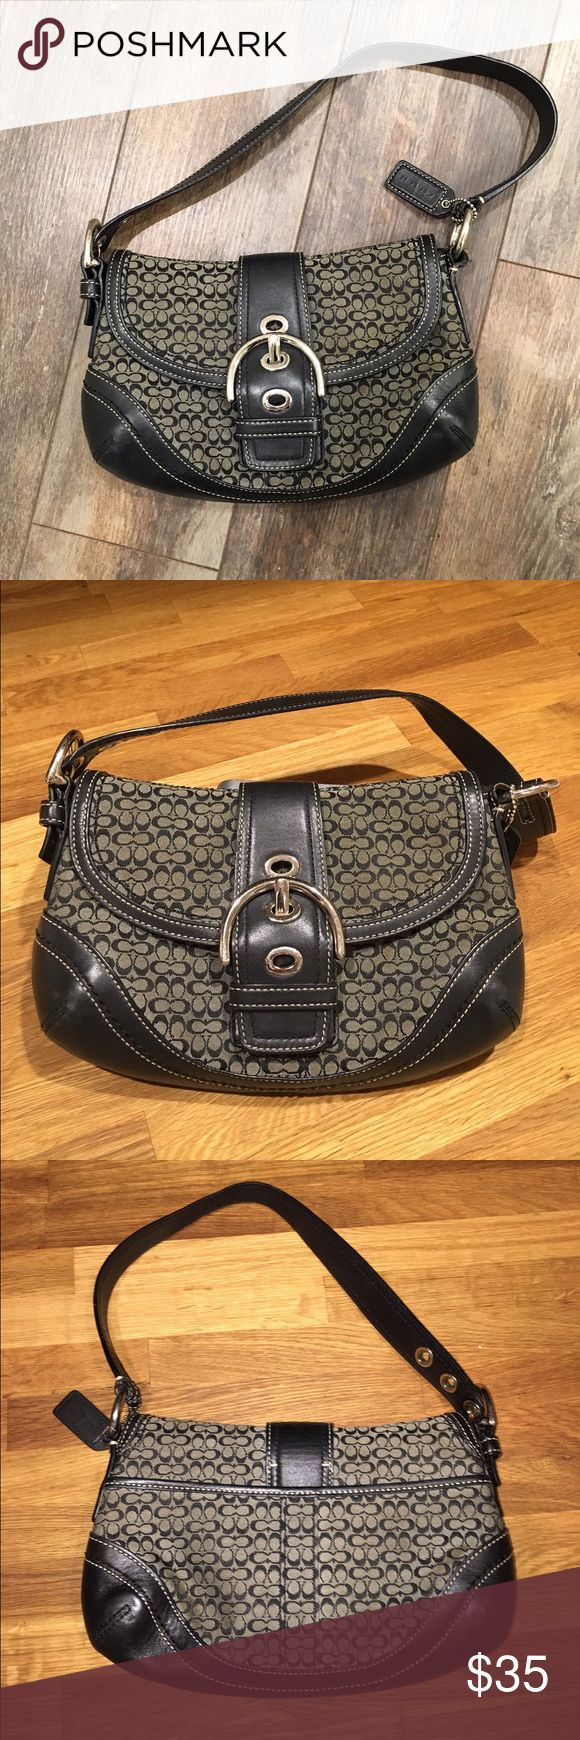 """Coach purse COACH purse, GUC.  👜 Buckle is for aesthetic purposes, magnetic snap behind it secures the purse.   Leather, fabric and stitching all in great condition.  Minor finish rubbed off at corners of bottom, and some scratches on metal areas.   10"""" wide x 6.5"""" tall x 2"""" deep (2.5"""" at corners).  👜 Please feel free to ask any questions. Coach Bags Mini Bags"""